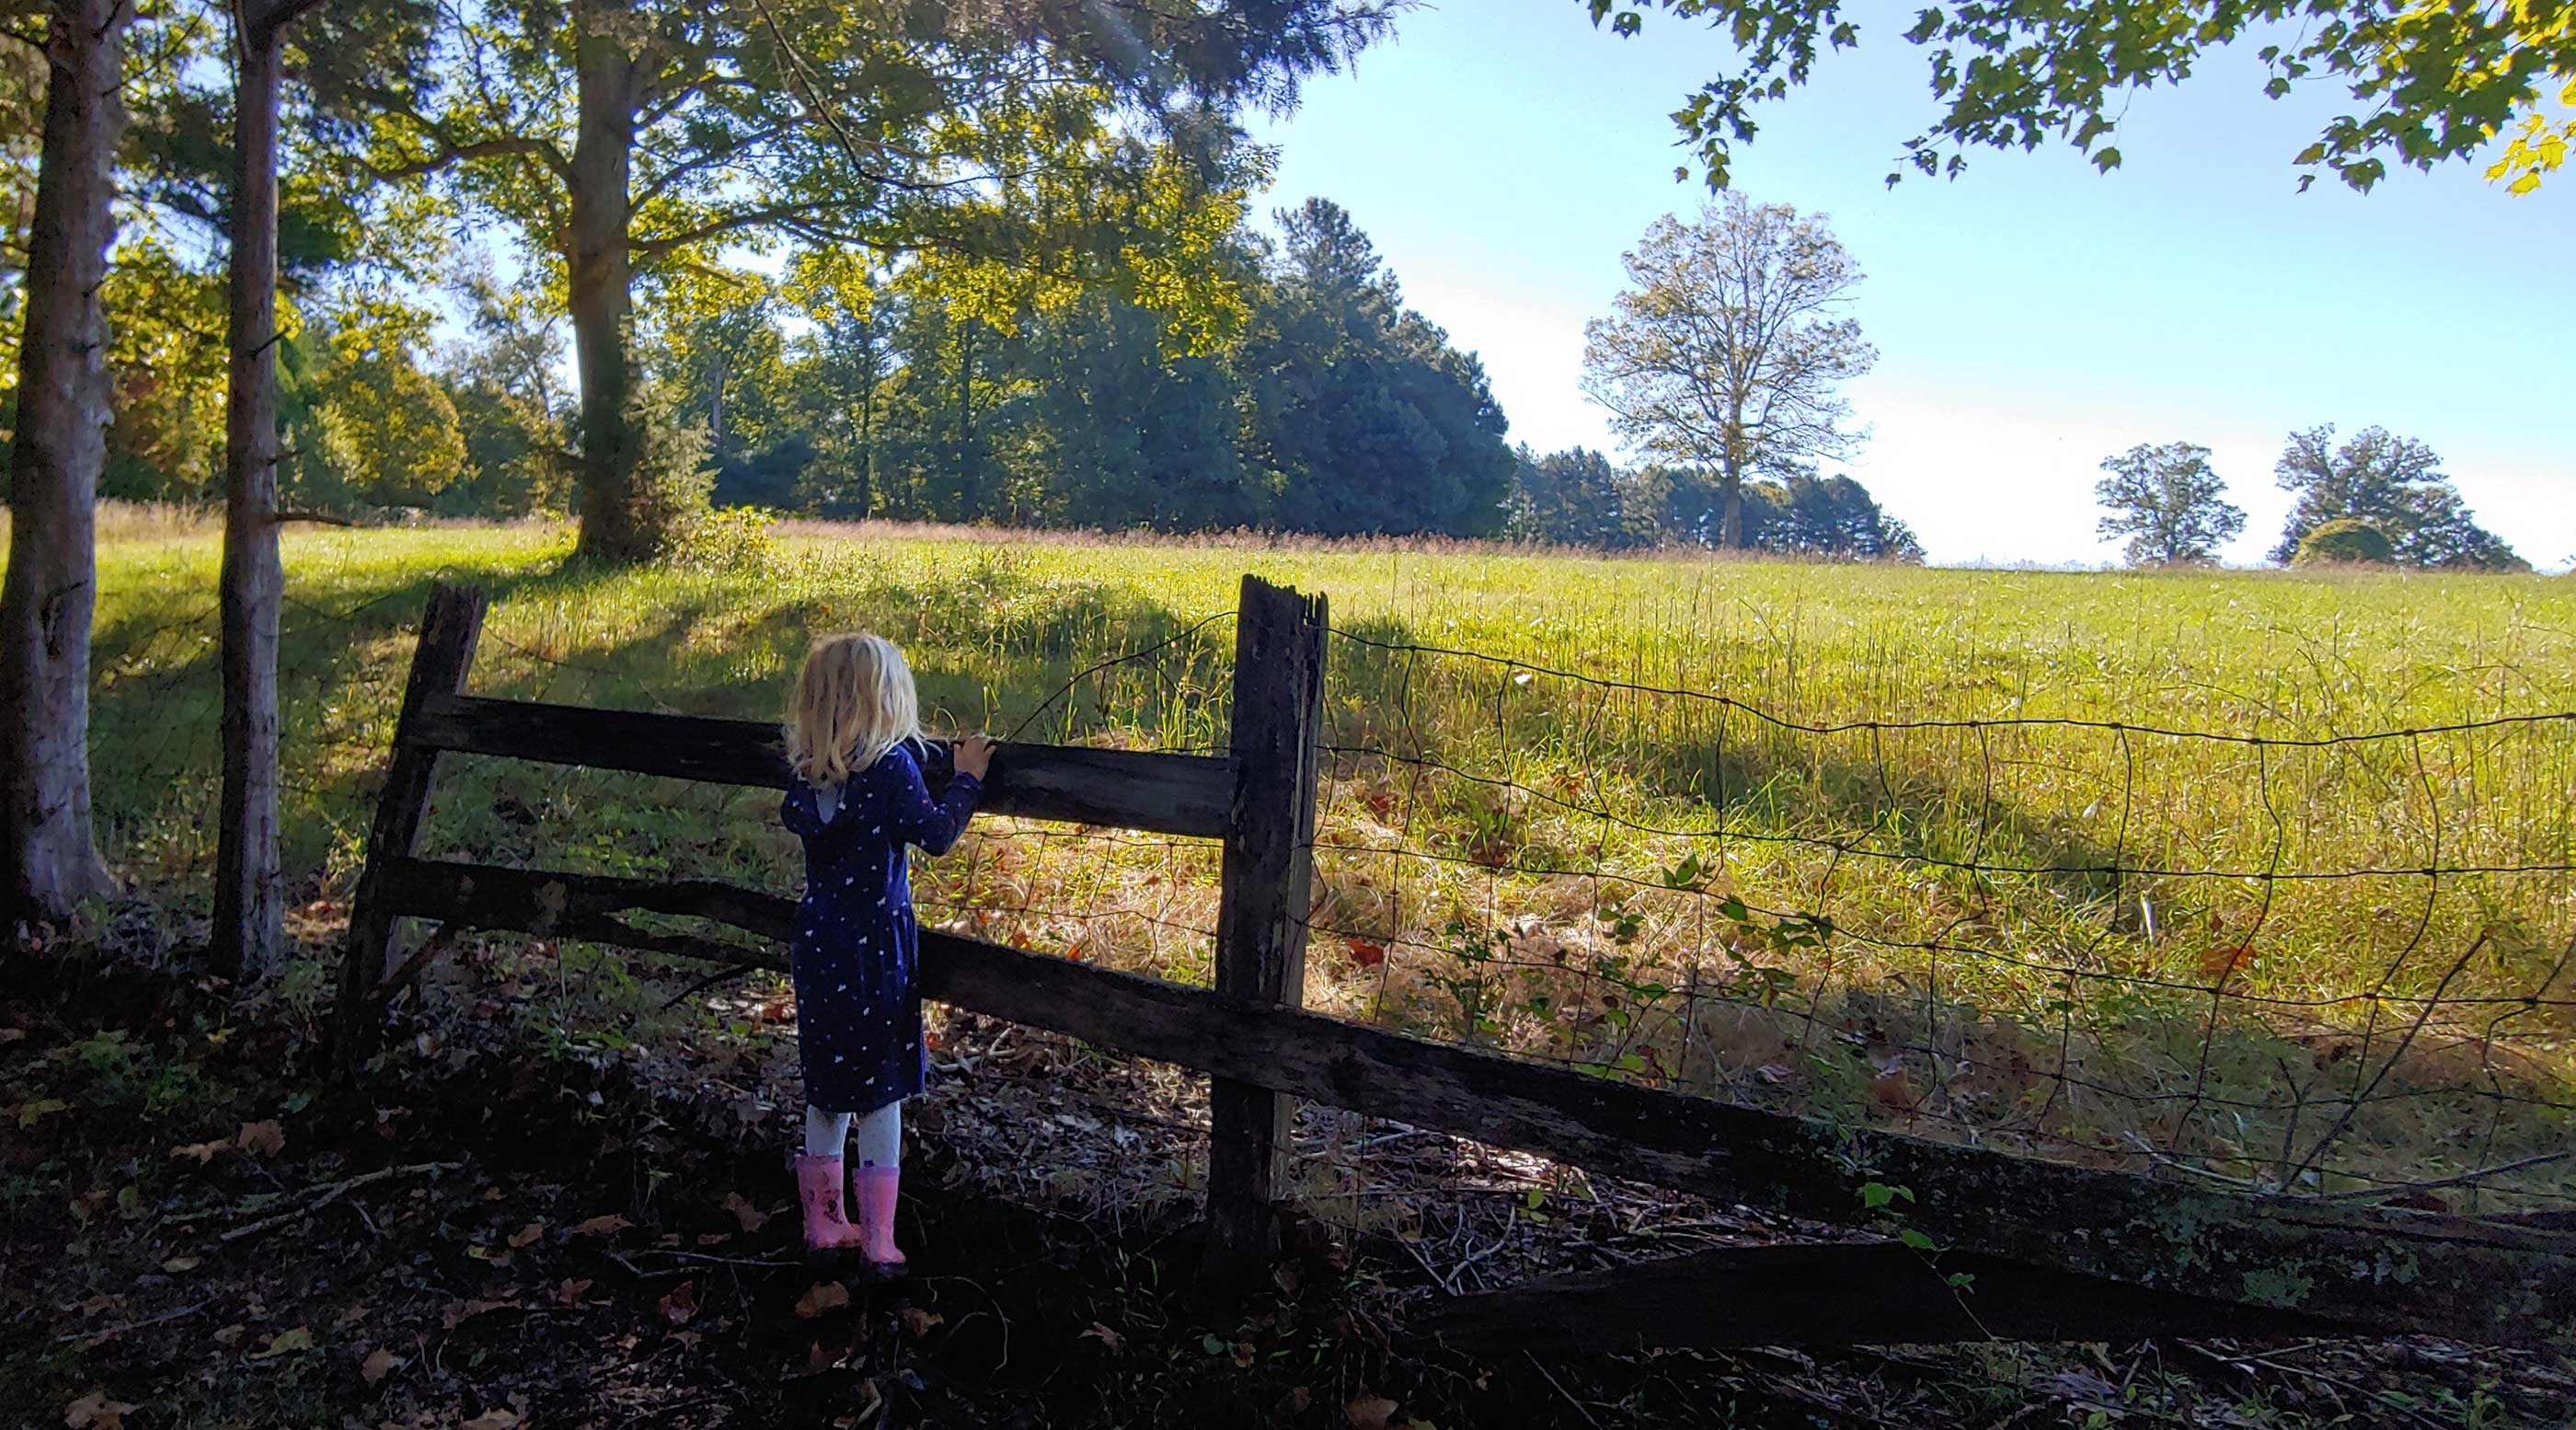 A young girl looks across a fence into a field